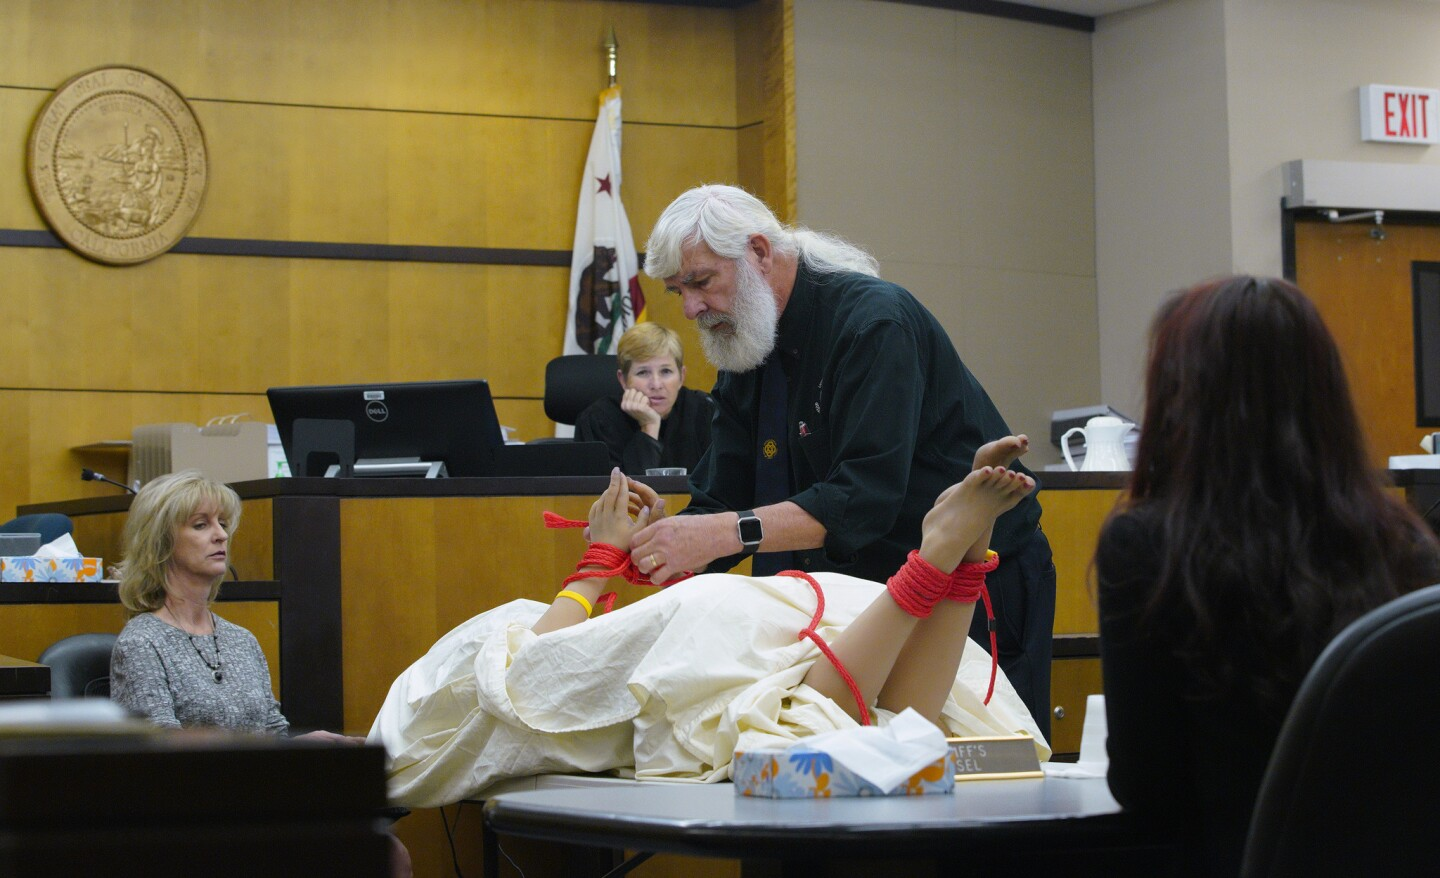 On day-five in the civil trial for the wrongful death of Rebecca Zahau in San Diego Superior Court, Lindsey Philpott appeared in court for the plaintiff as an forensic knot analyst. Philpott was asked by the plaintiff attorney to replicate the knots found on Zahau's body to be tied on the mannequin.